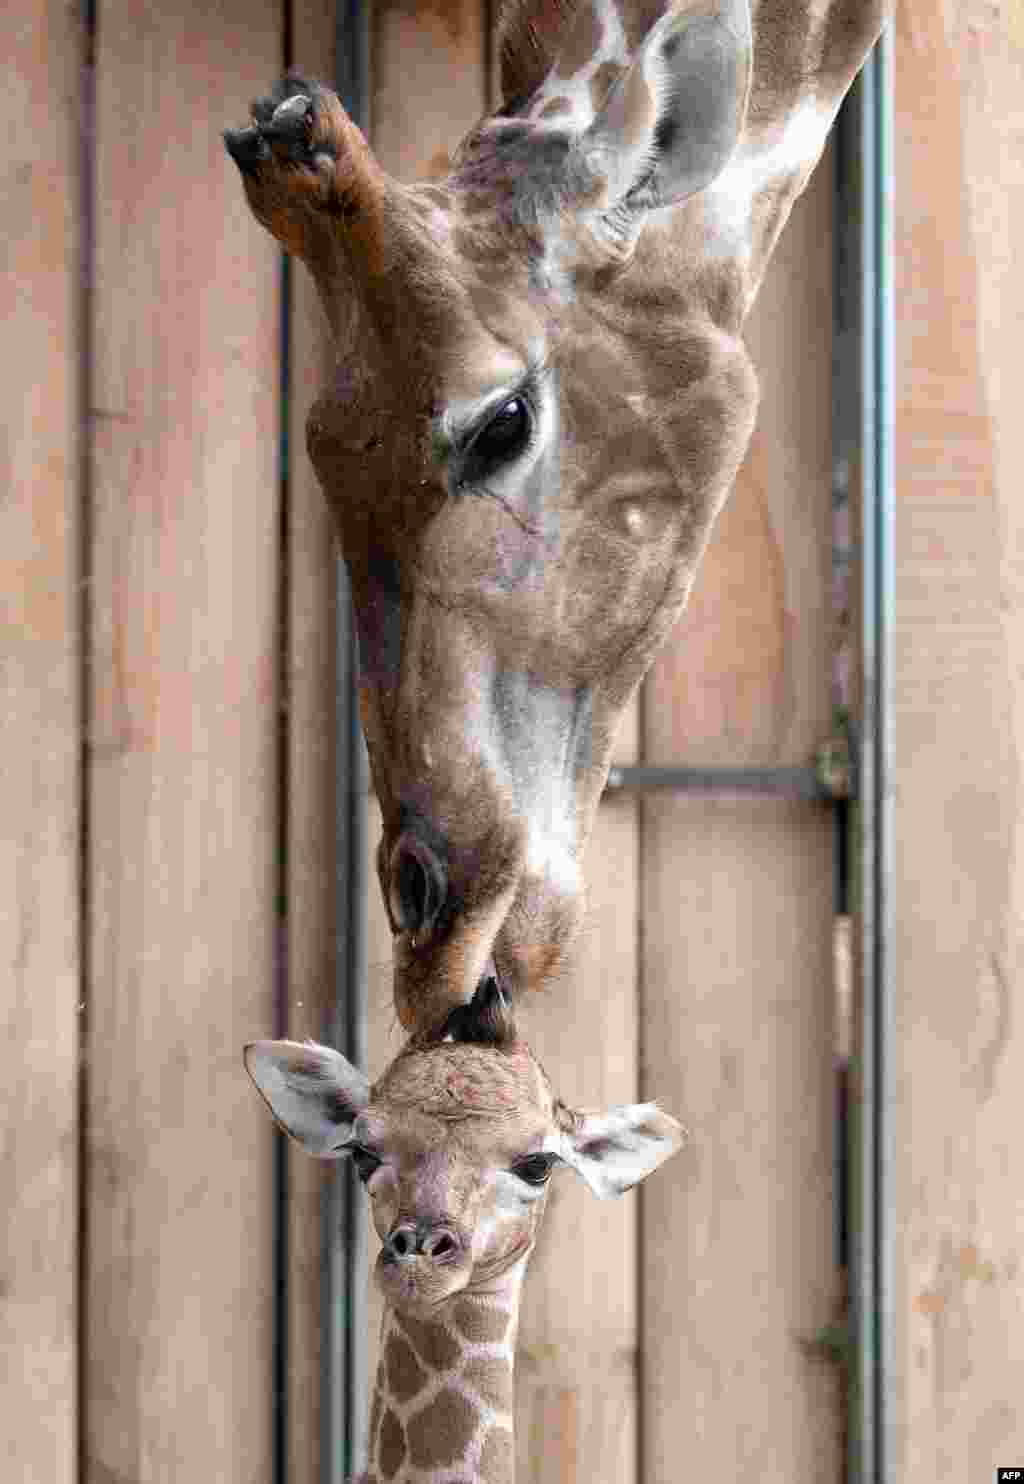 A baby giraffe is nuzzled by its mother, Gambela, at an enclosure at a zoo in Dortmund, Germany. (AFP/Bernd Thissen)